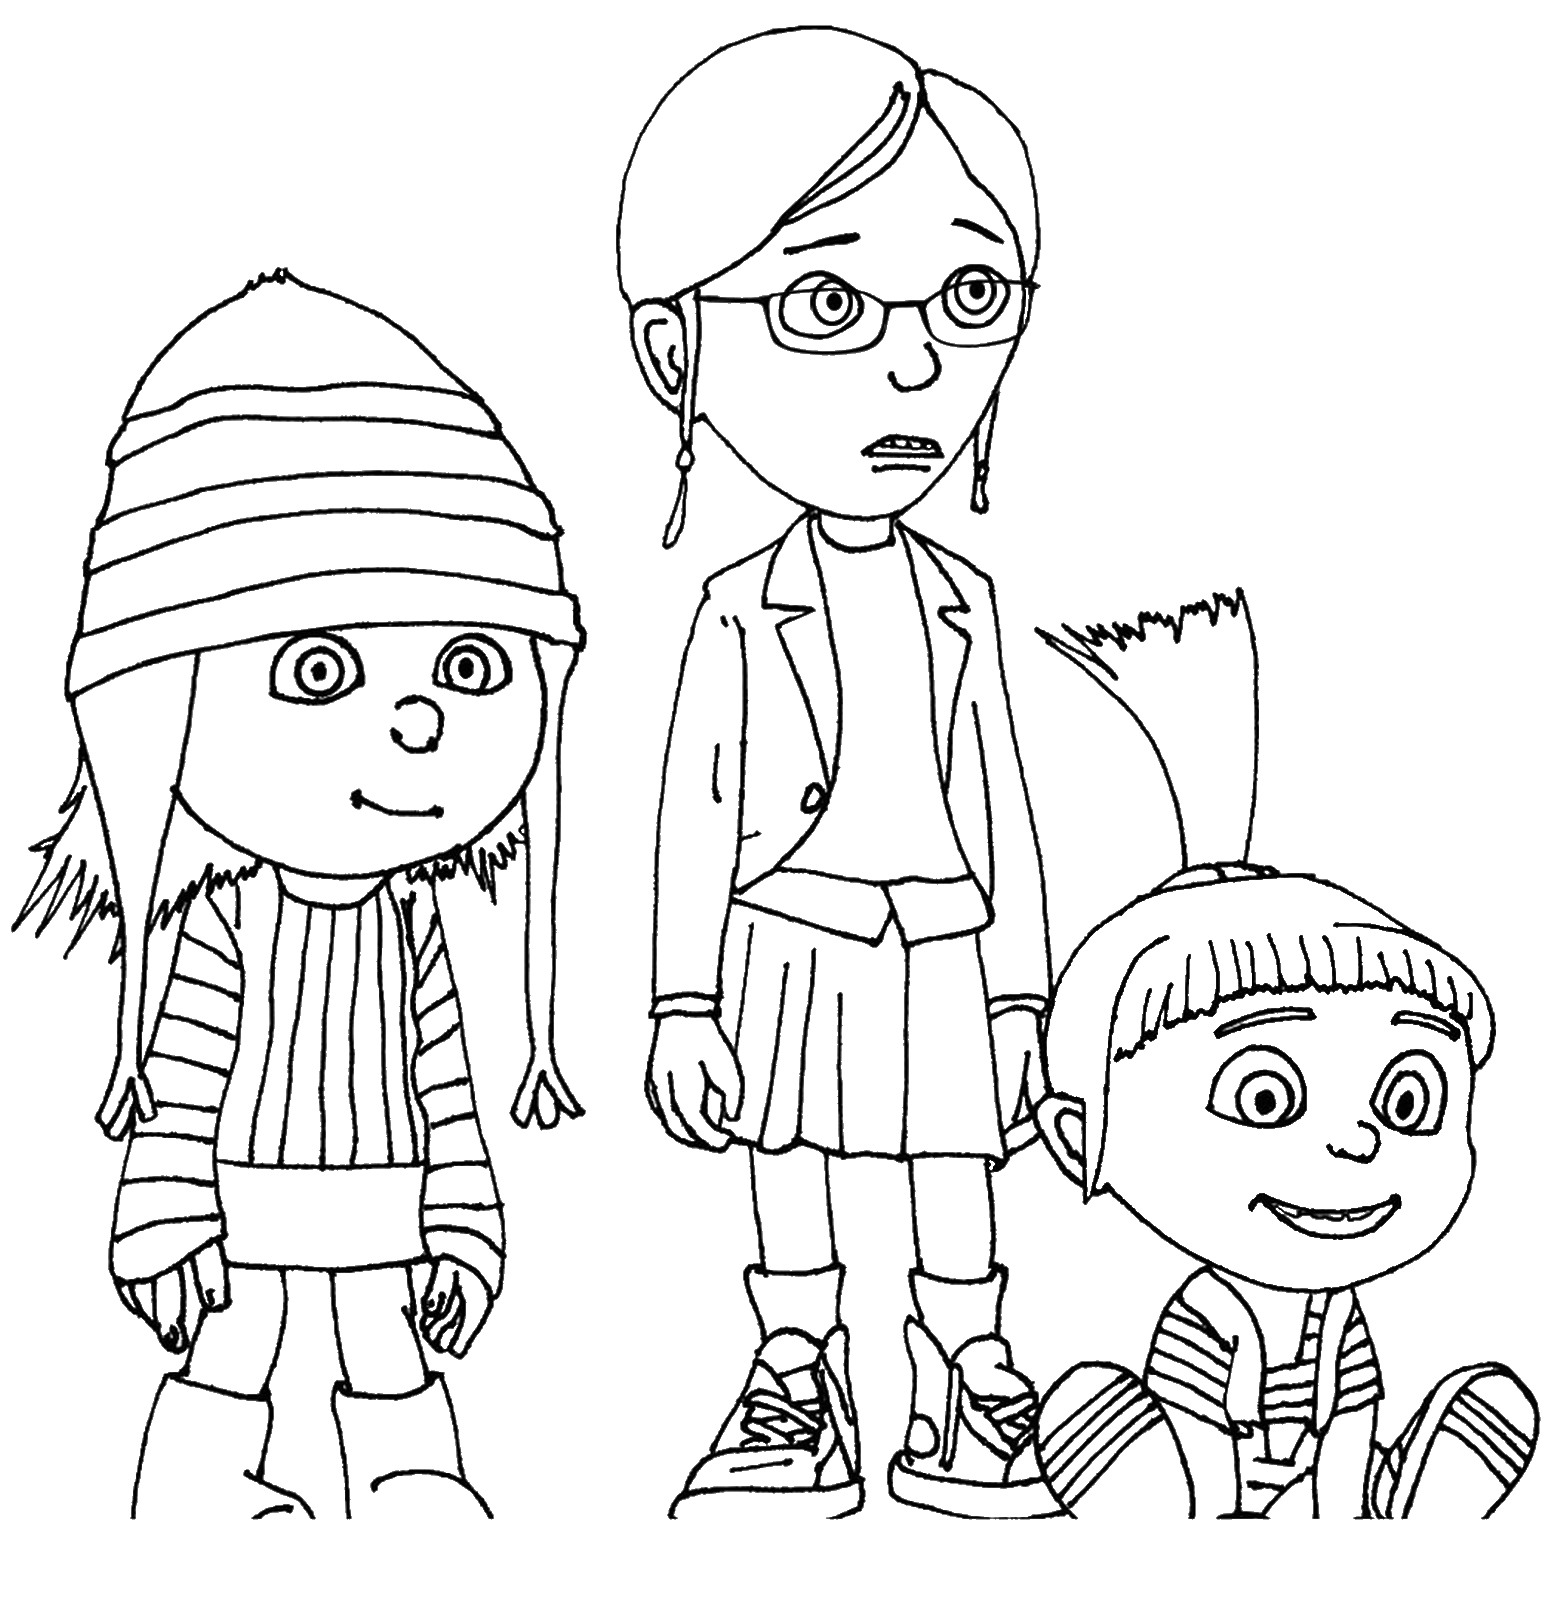 despicable me pictures to print despicable me 3 coloring pages me pictures despicable to print